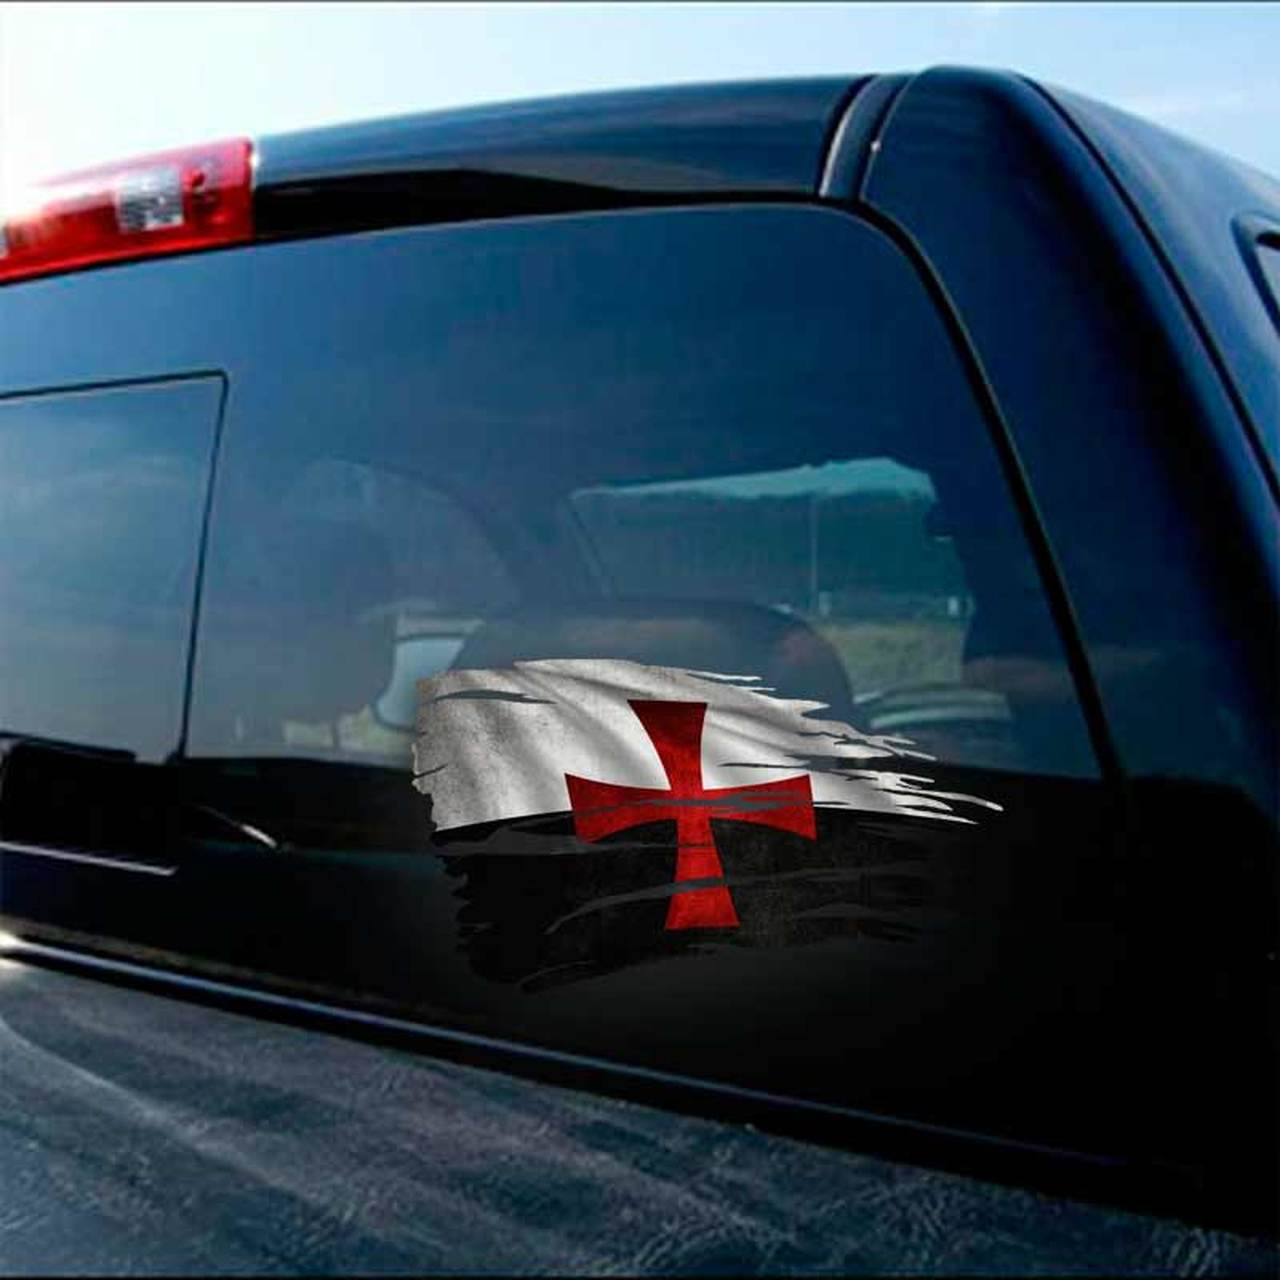 How to Apply Vinyl Decal?